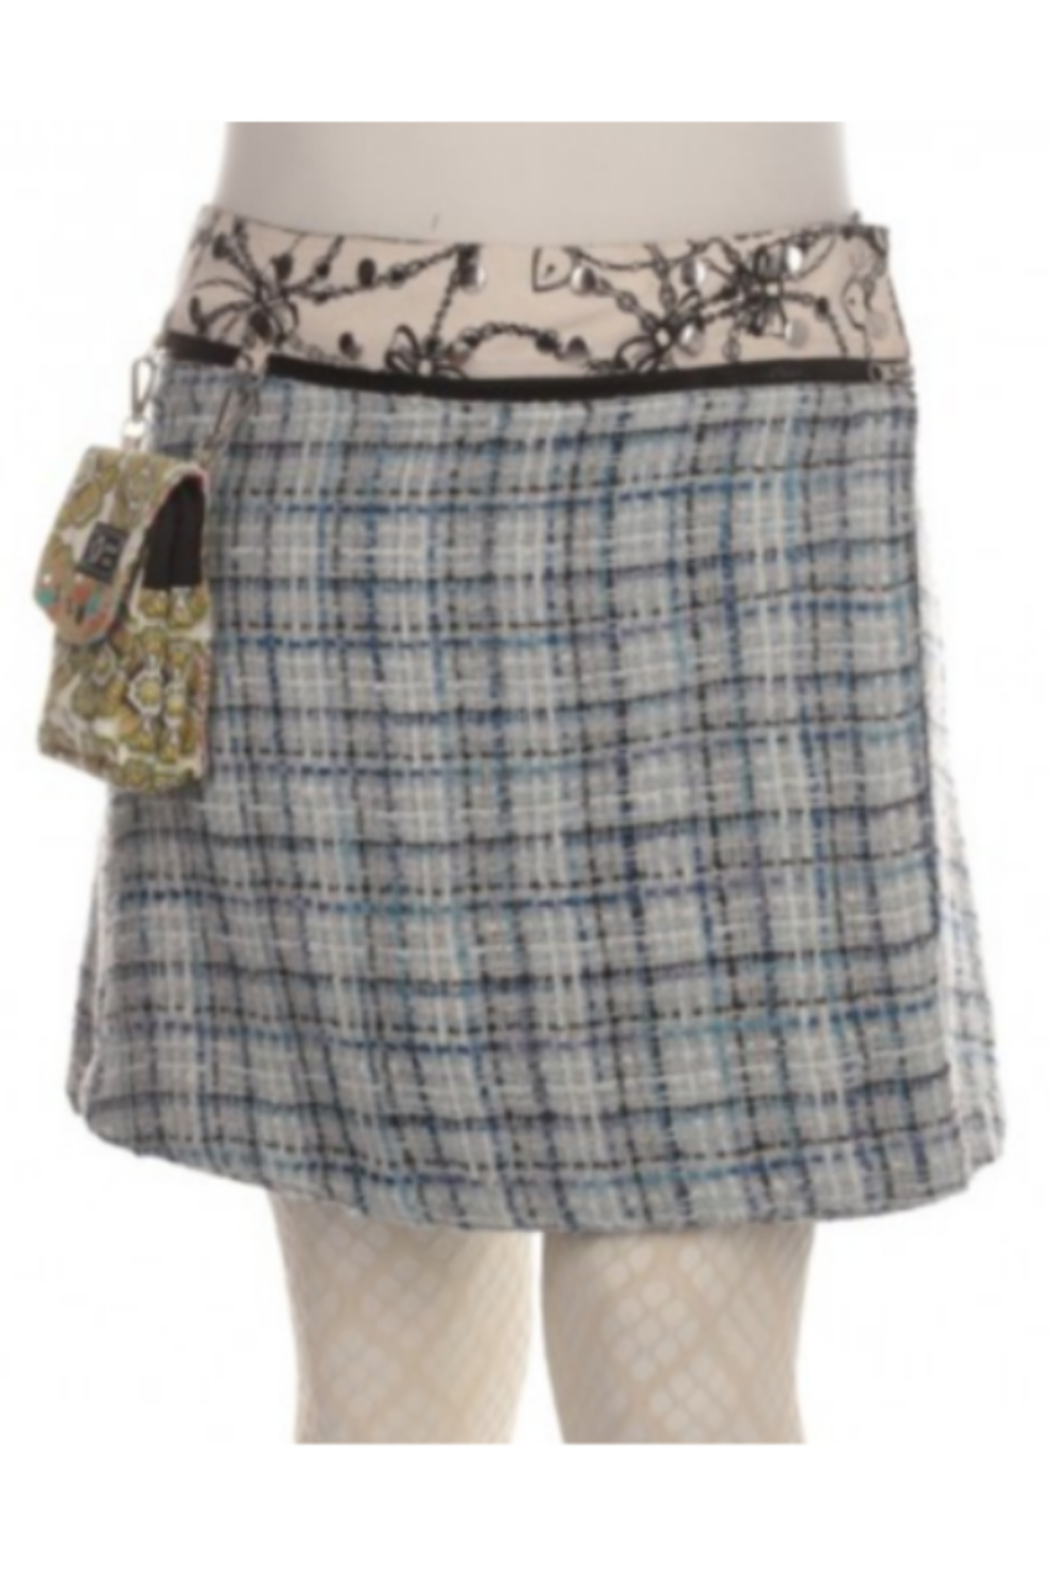 IBIZA Reversible wool or corduroy skirt with detachable pouch (sizes 0-12 and 19